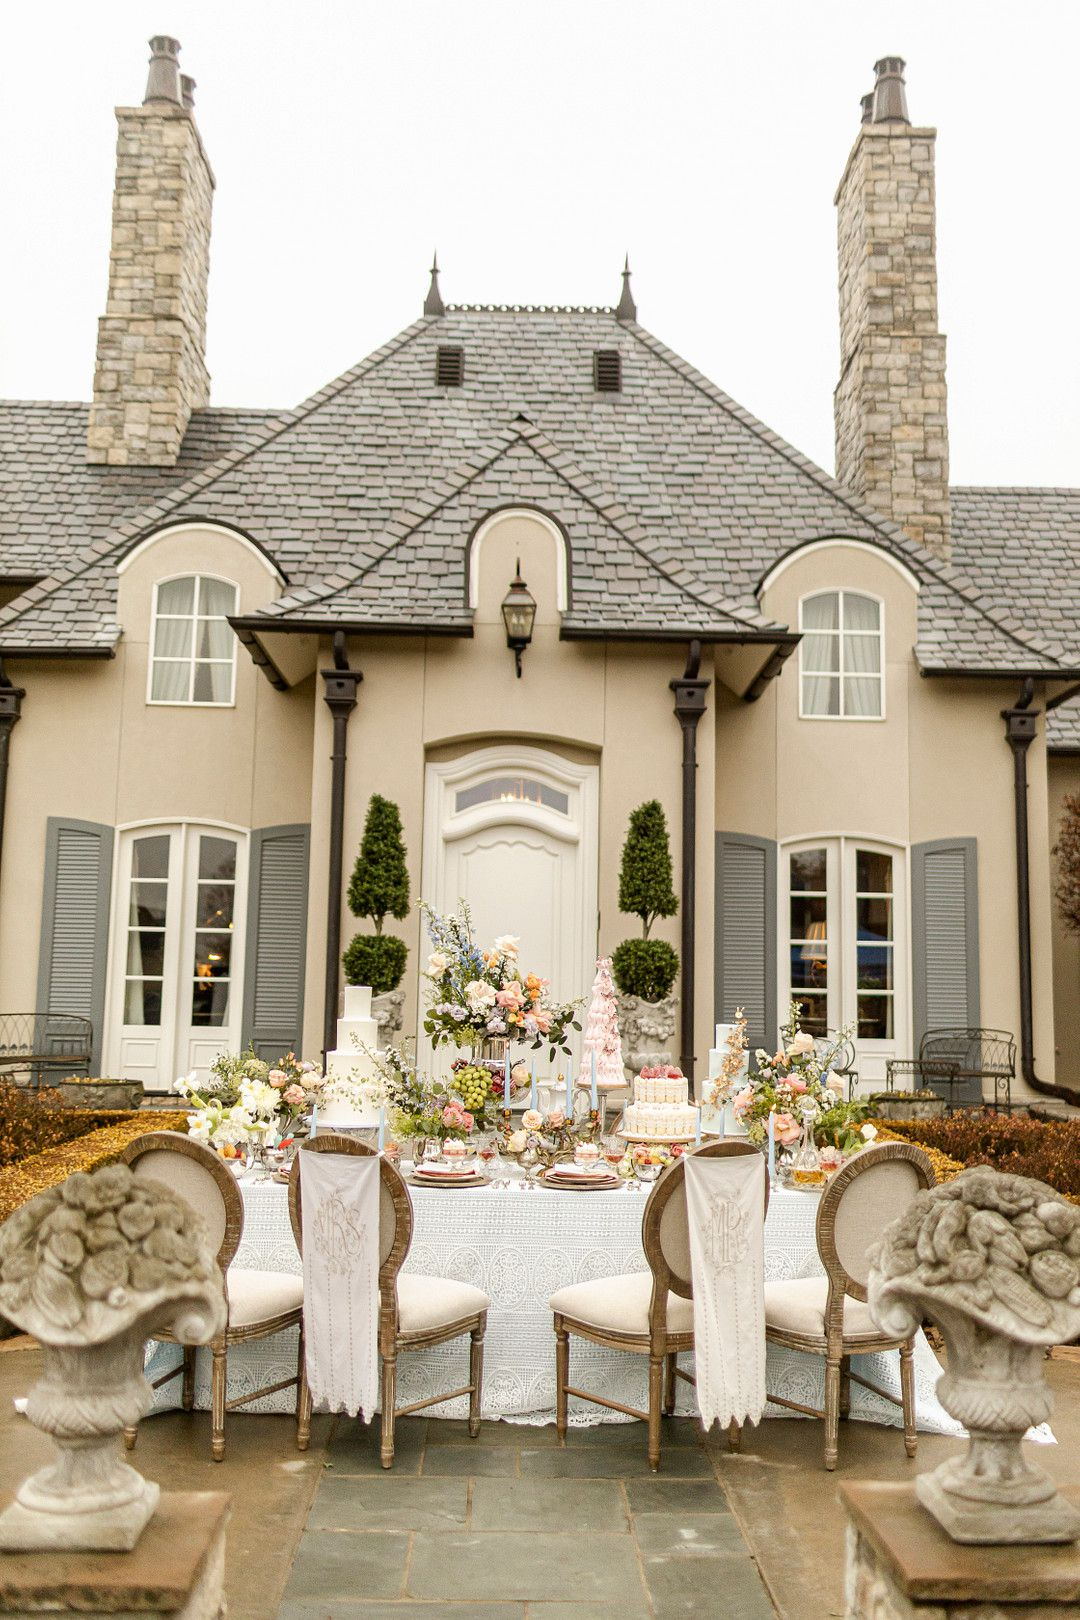 mansion with dessert table in front